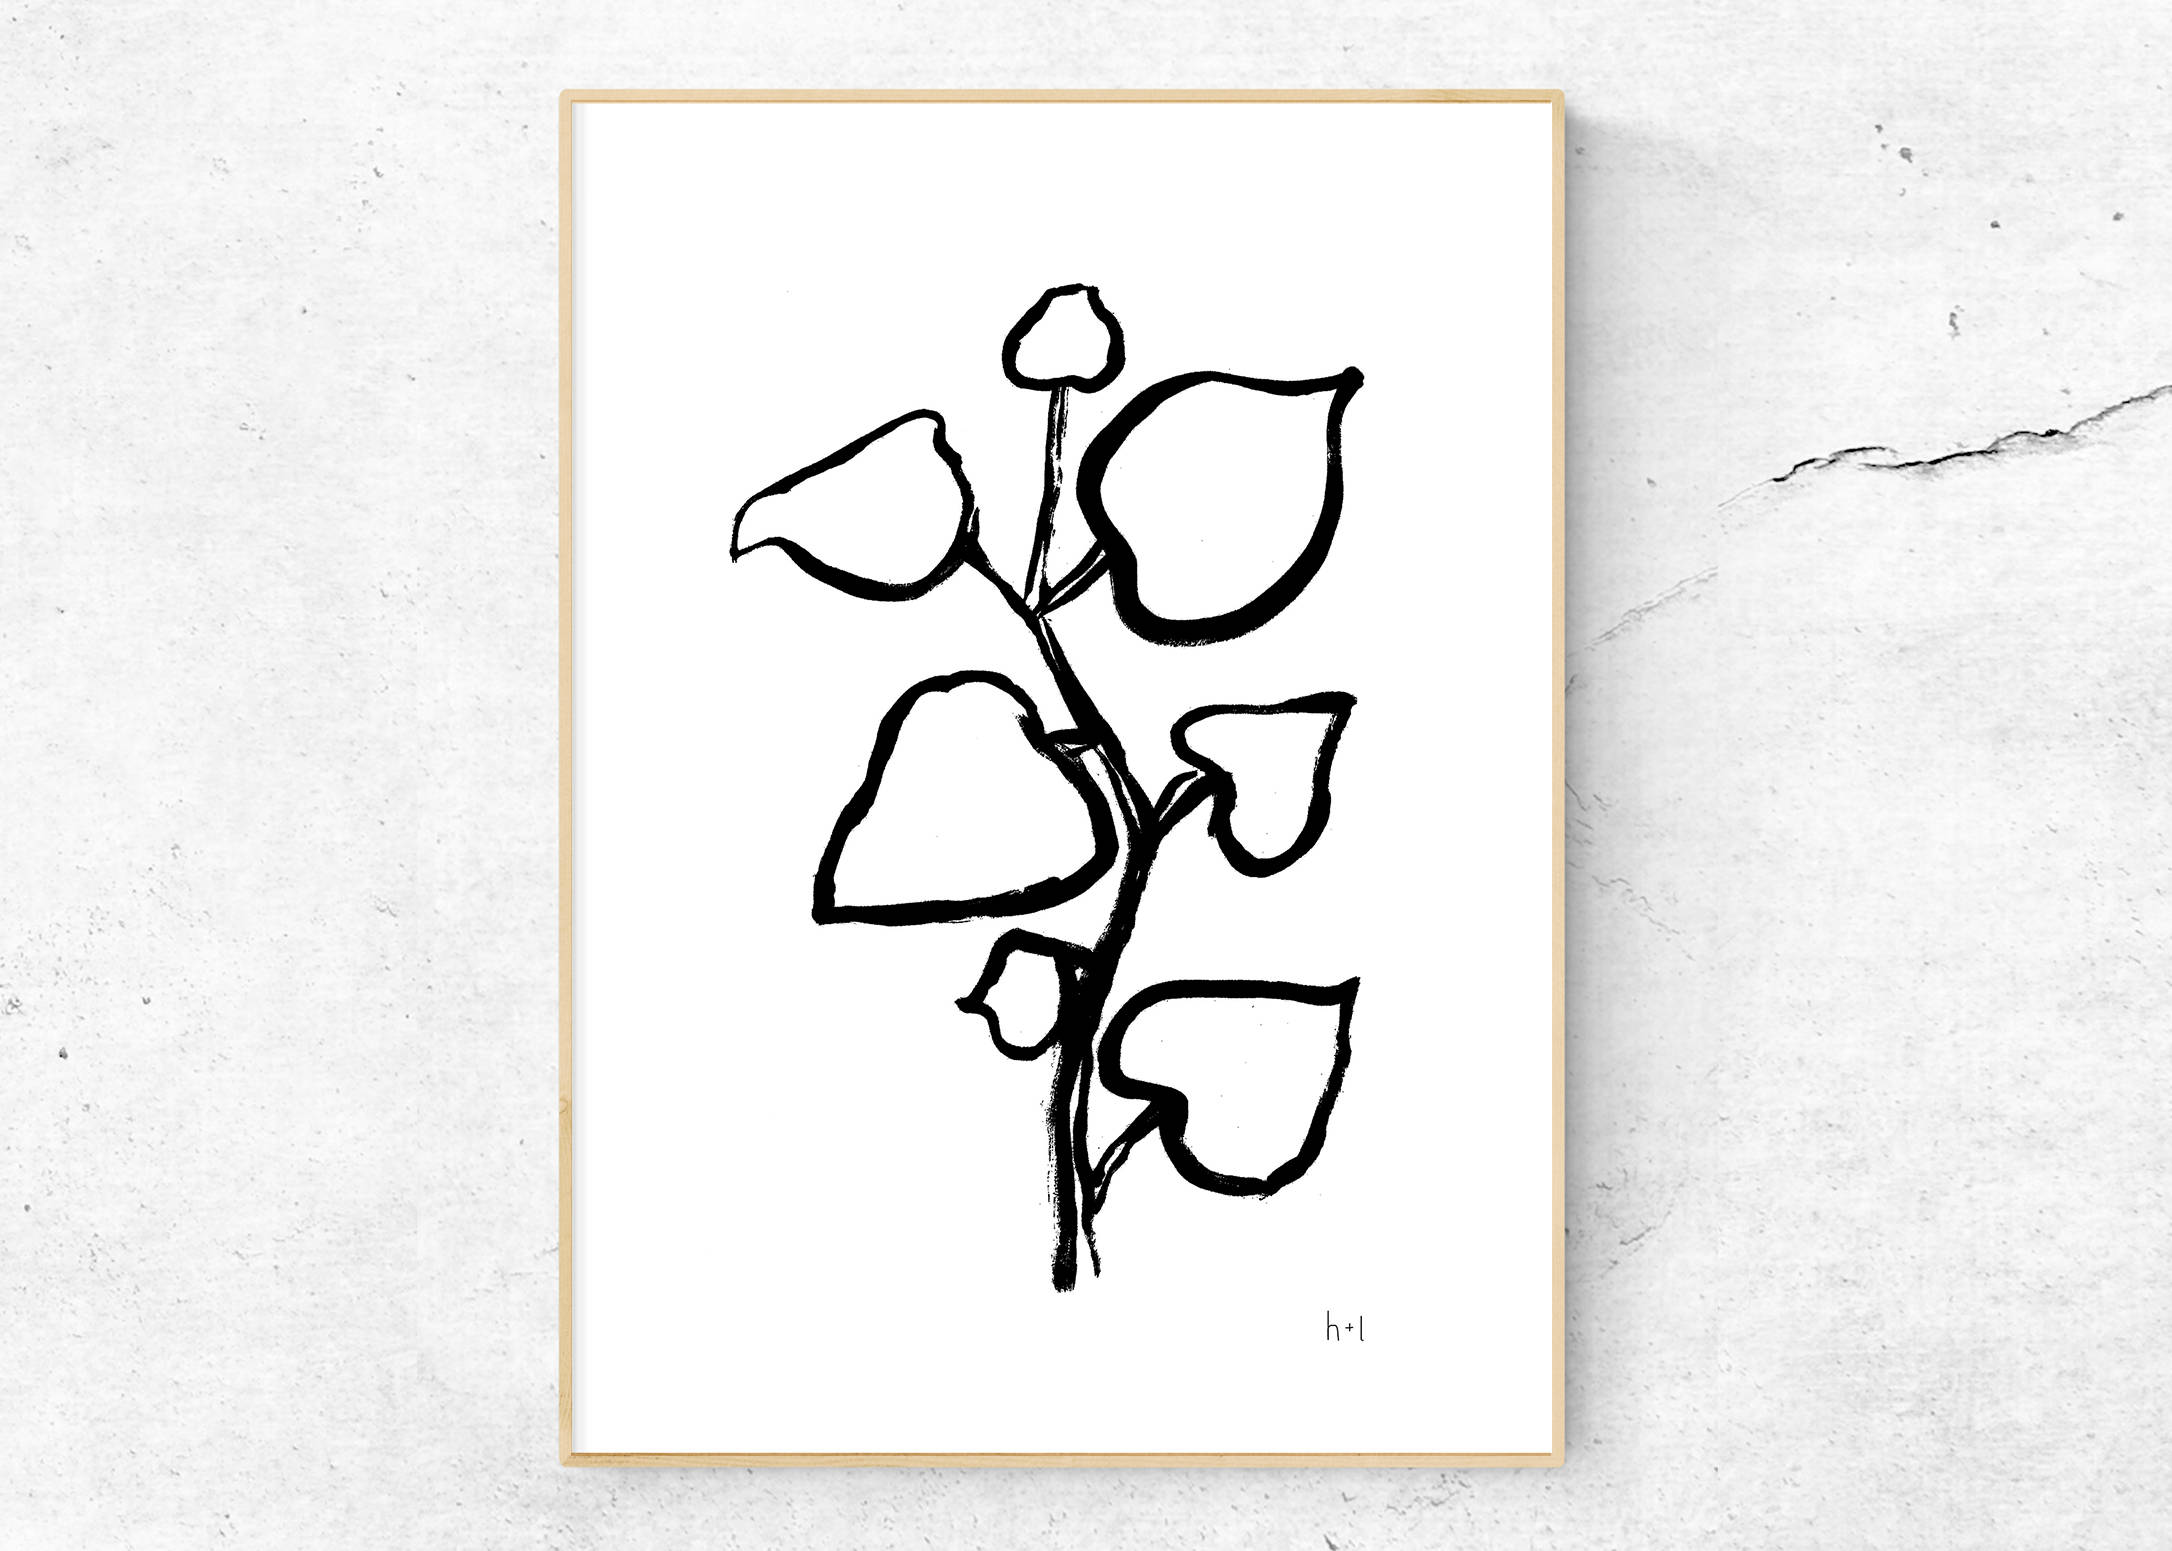 2172x1551 Hibiscus Leaves Poster Digital Download Line Drawing Ink Etsy